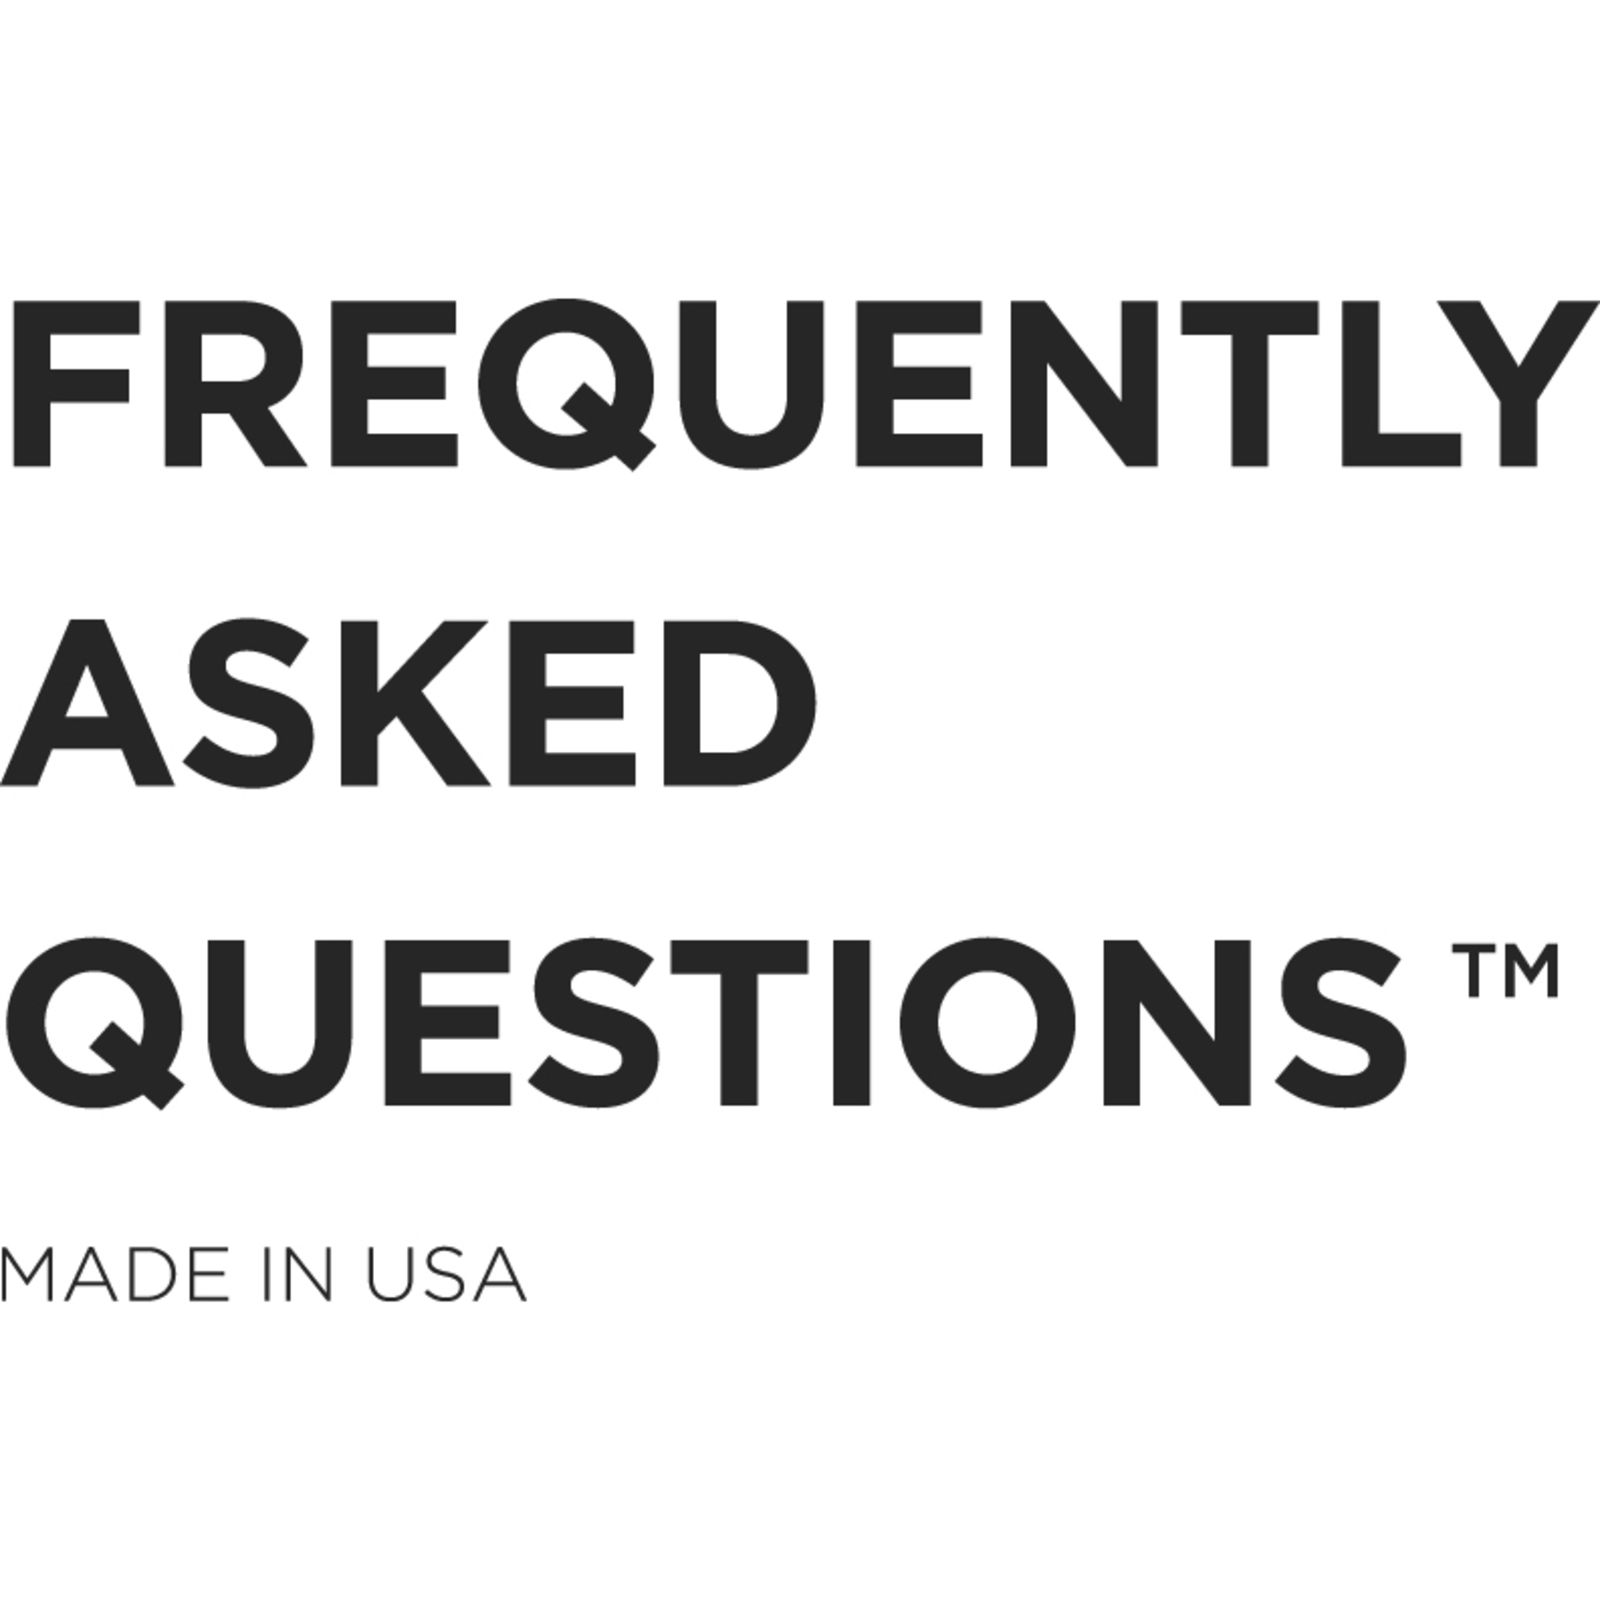 FREQUENTLY ASKED QUESTIONS™